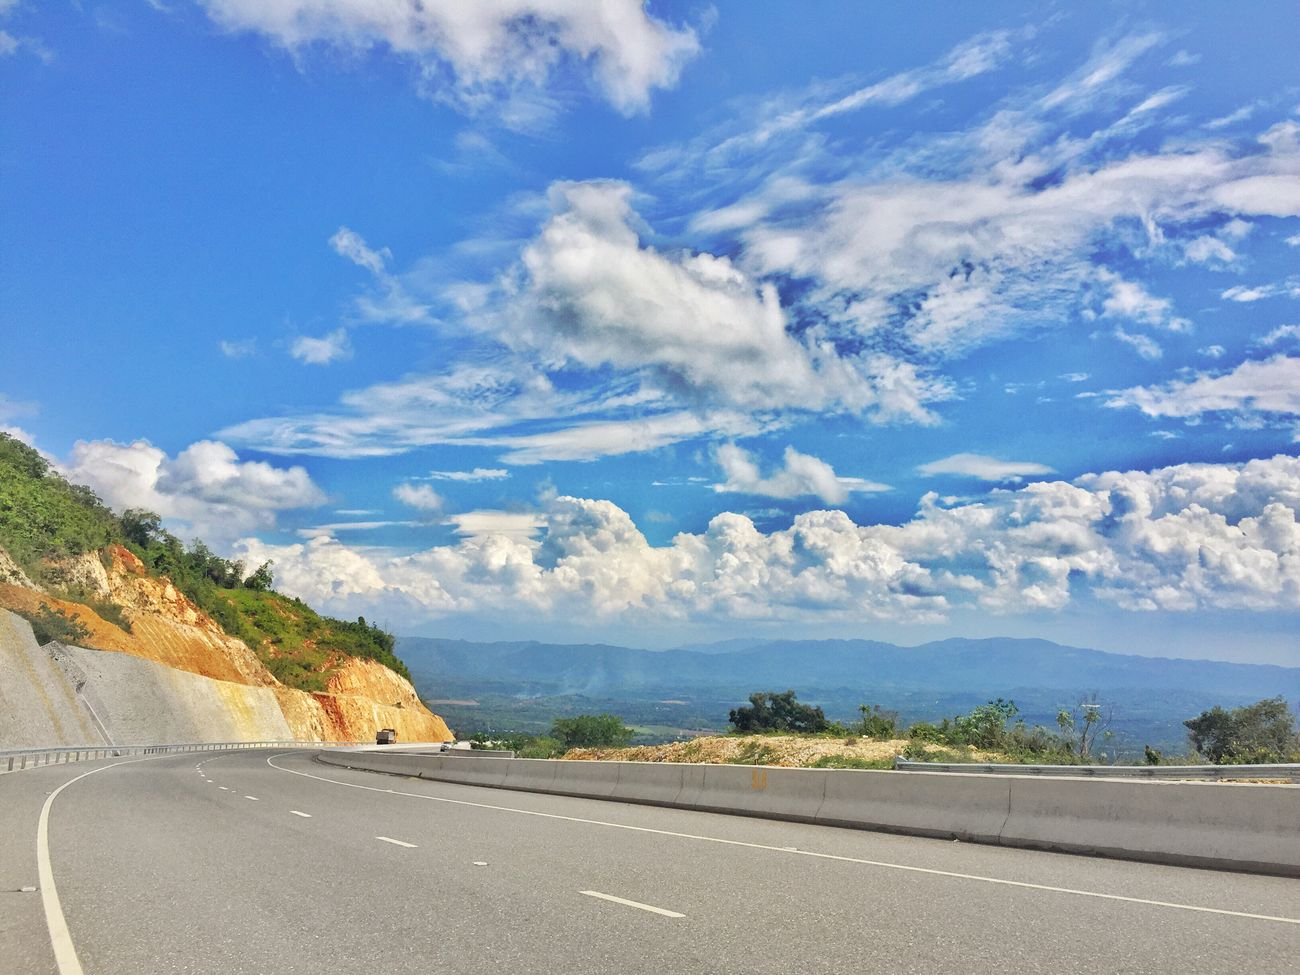 Highway Mount Rosser Jamaica First Eyeem Photo